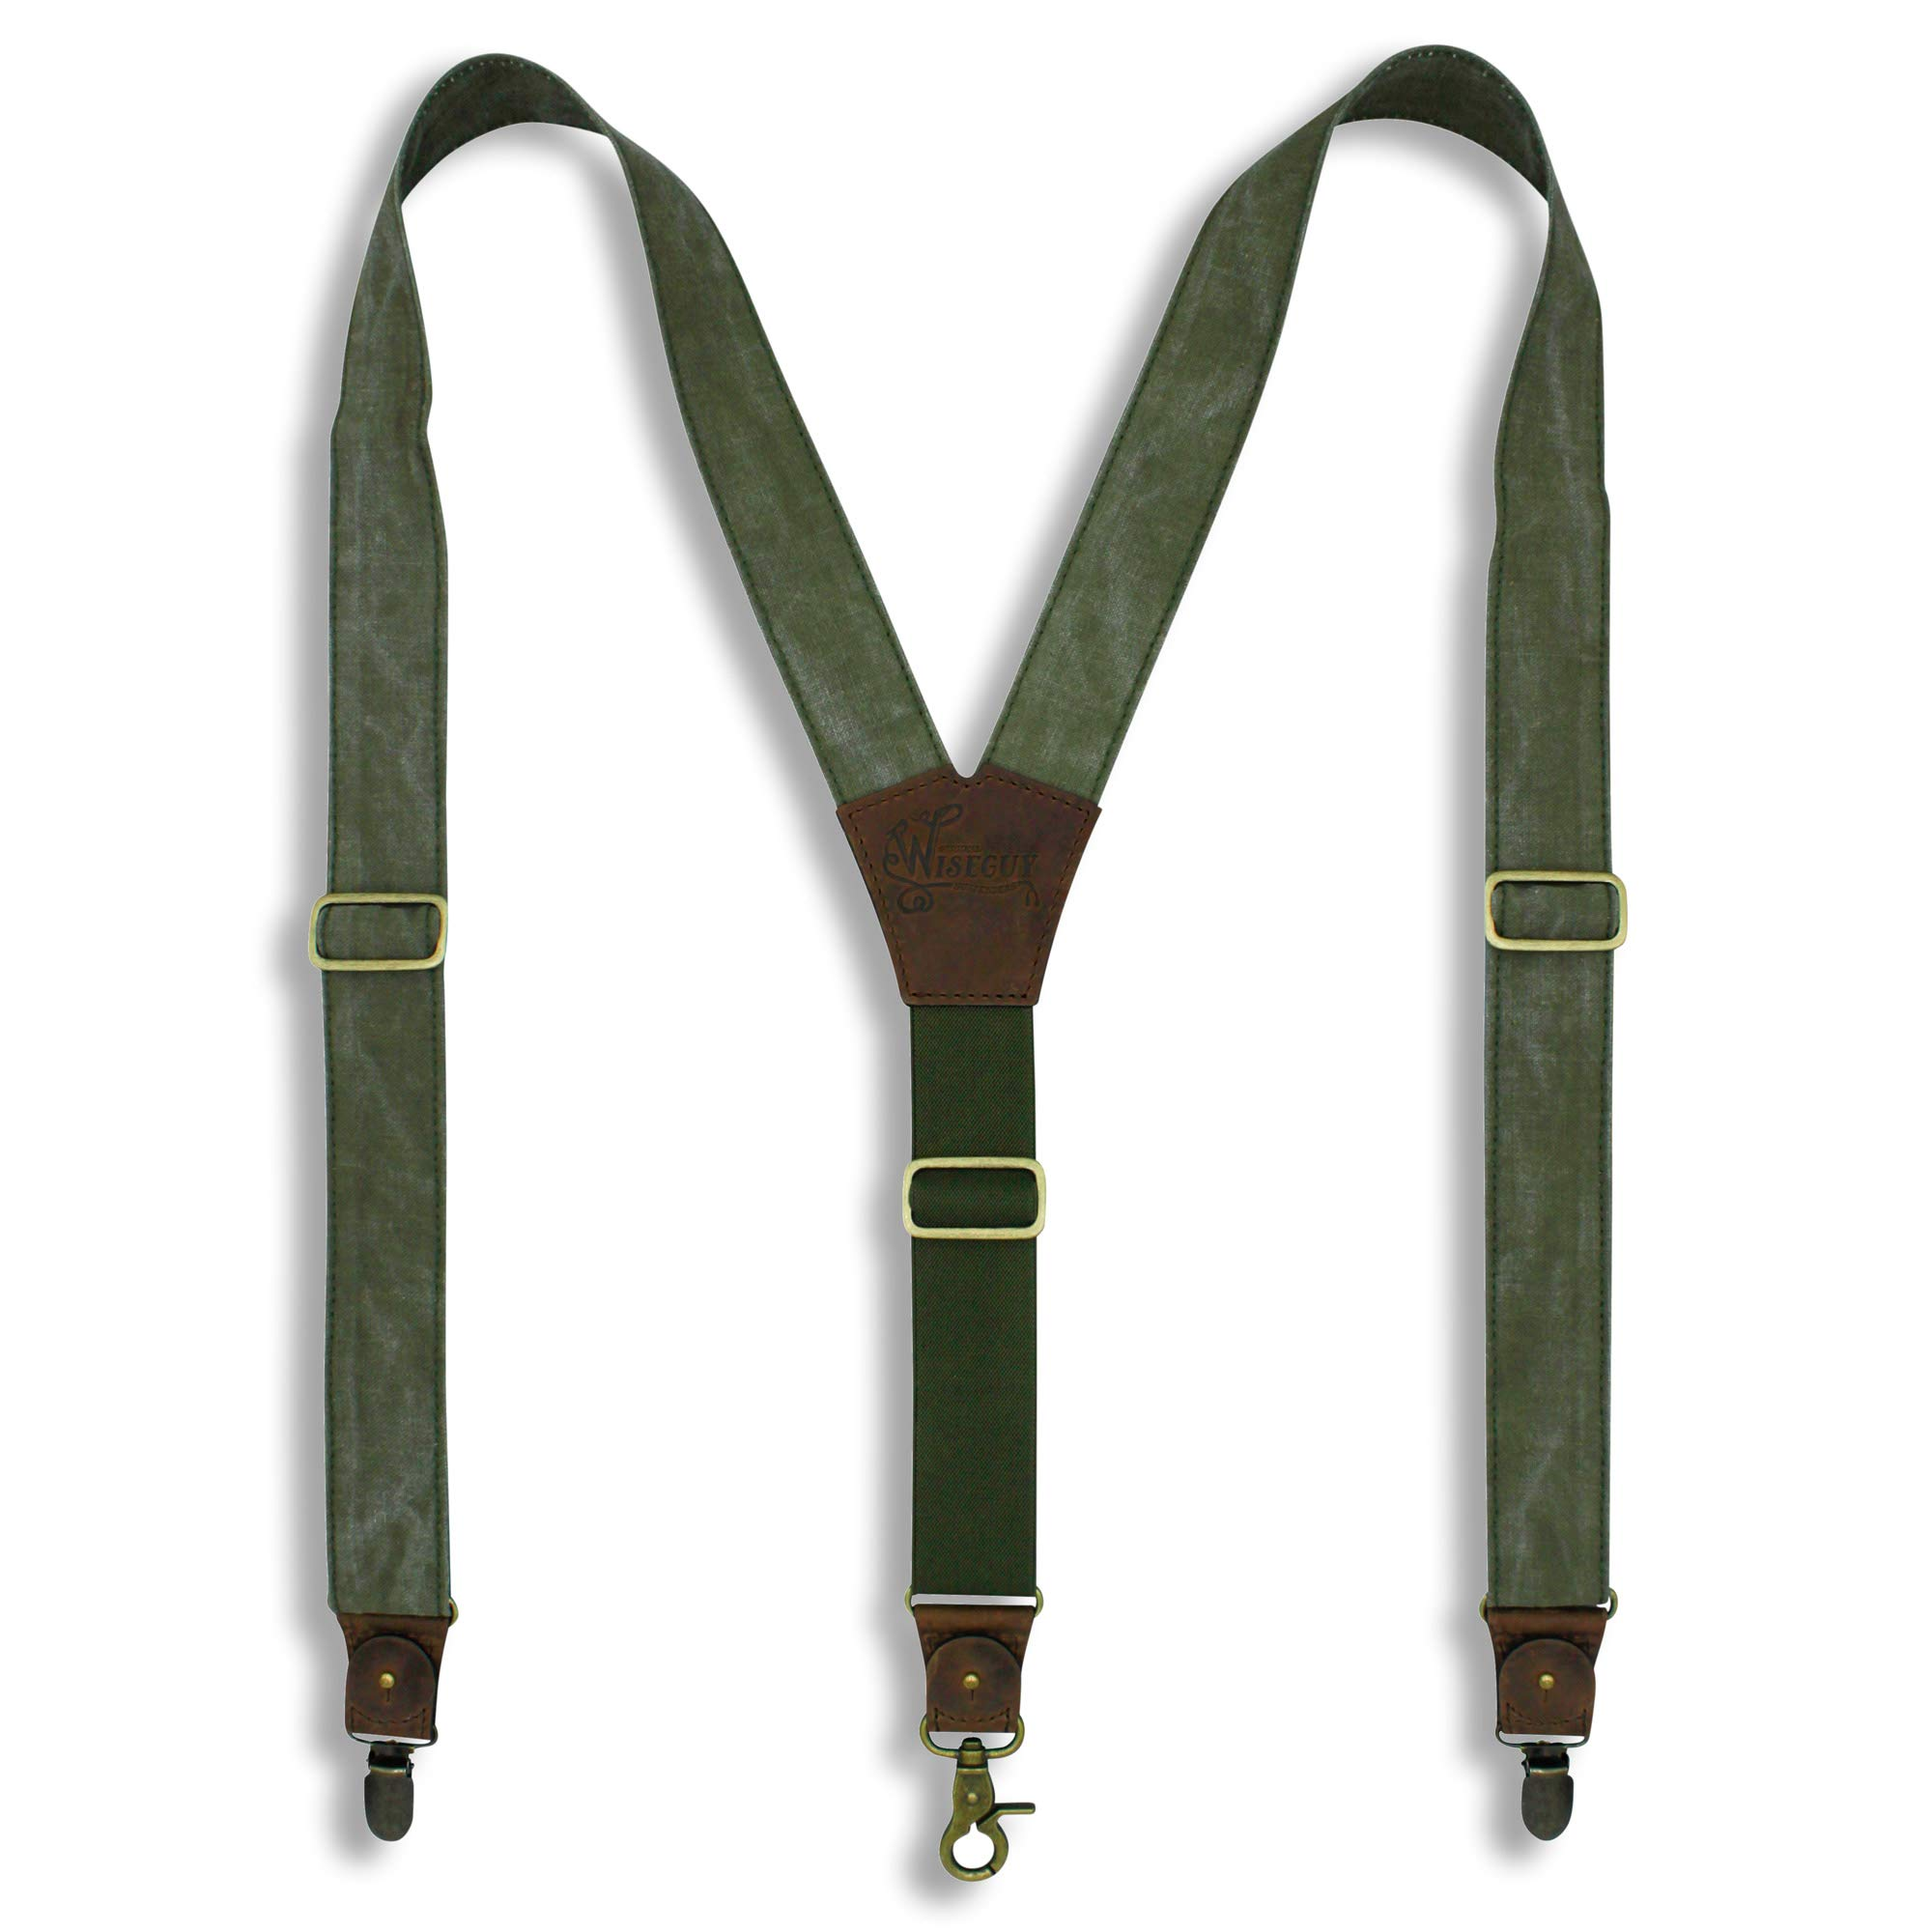 Wiseguy Army Canvas Salvaged Suspenders with elastic Y-shape Back Strap 1.36 inch/3.5 cm wide